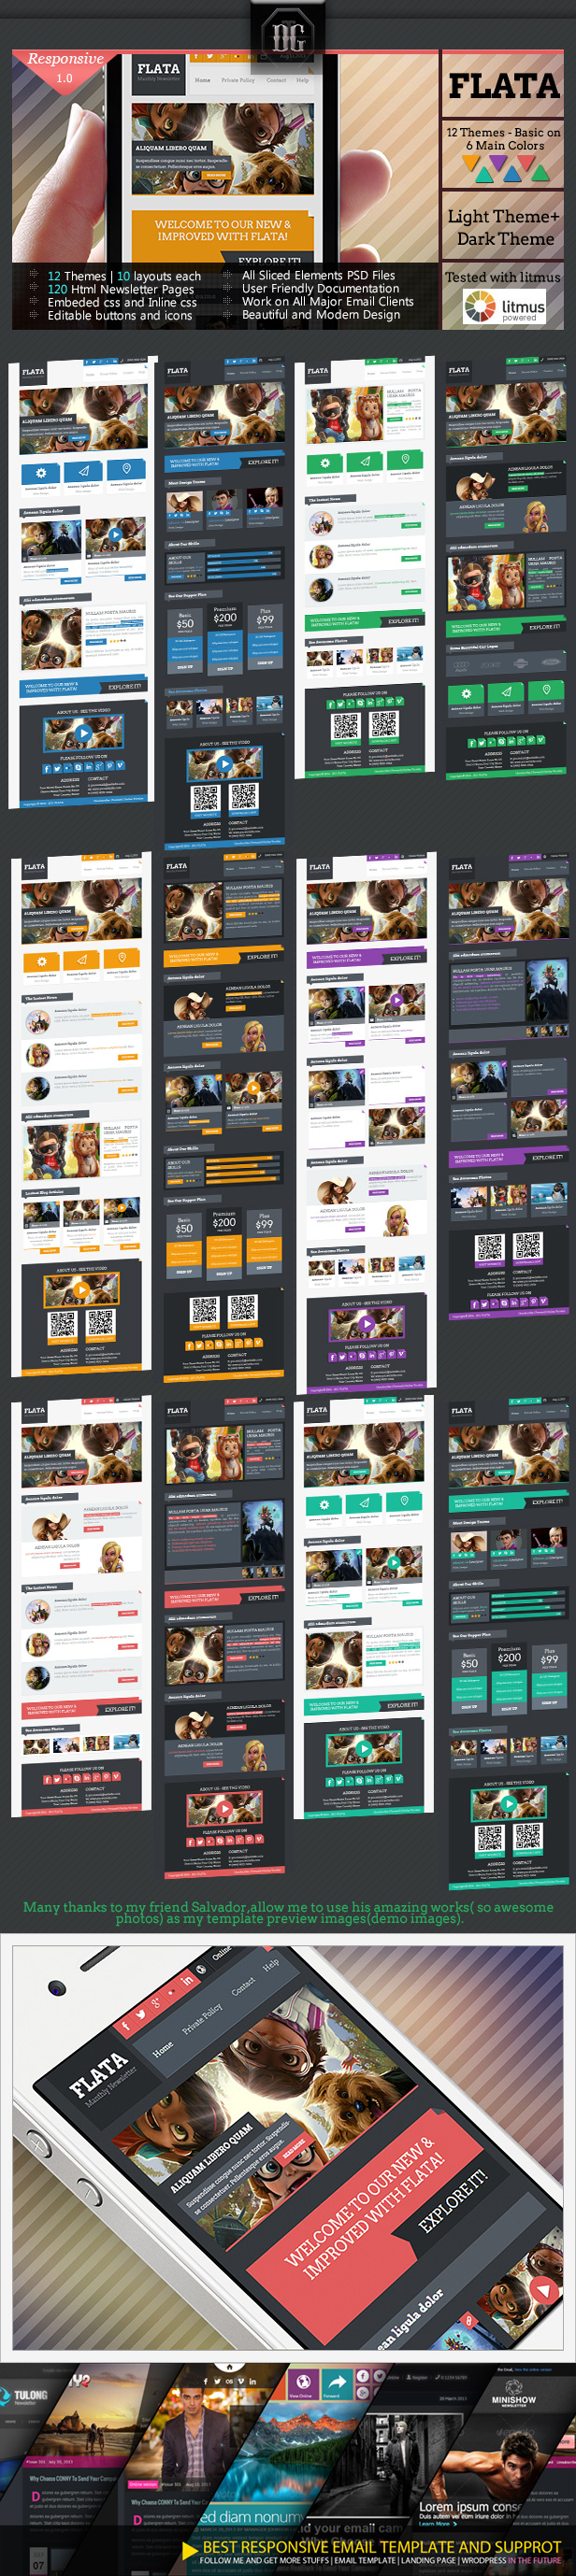 FLATA- Flat Responsive Email With Template Builder | Responsive ...